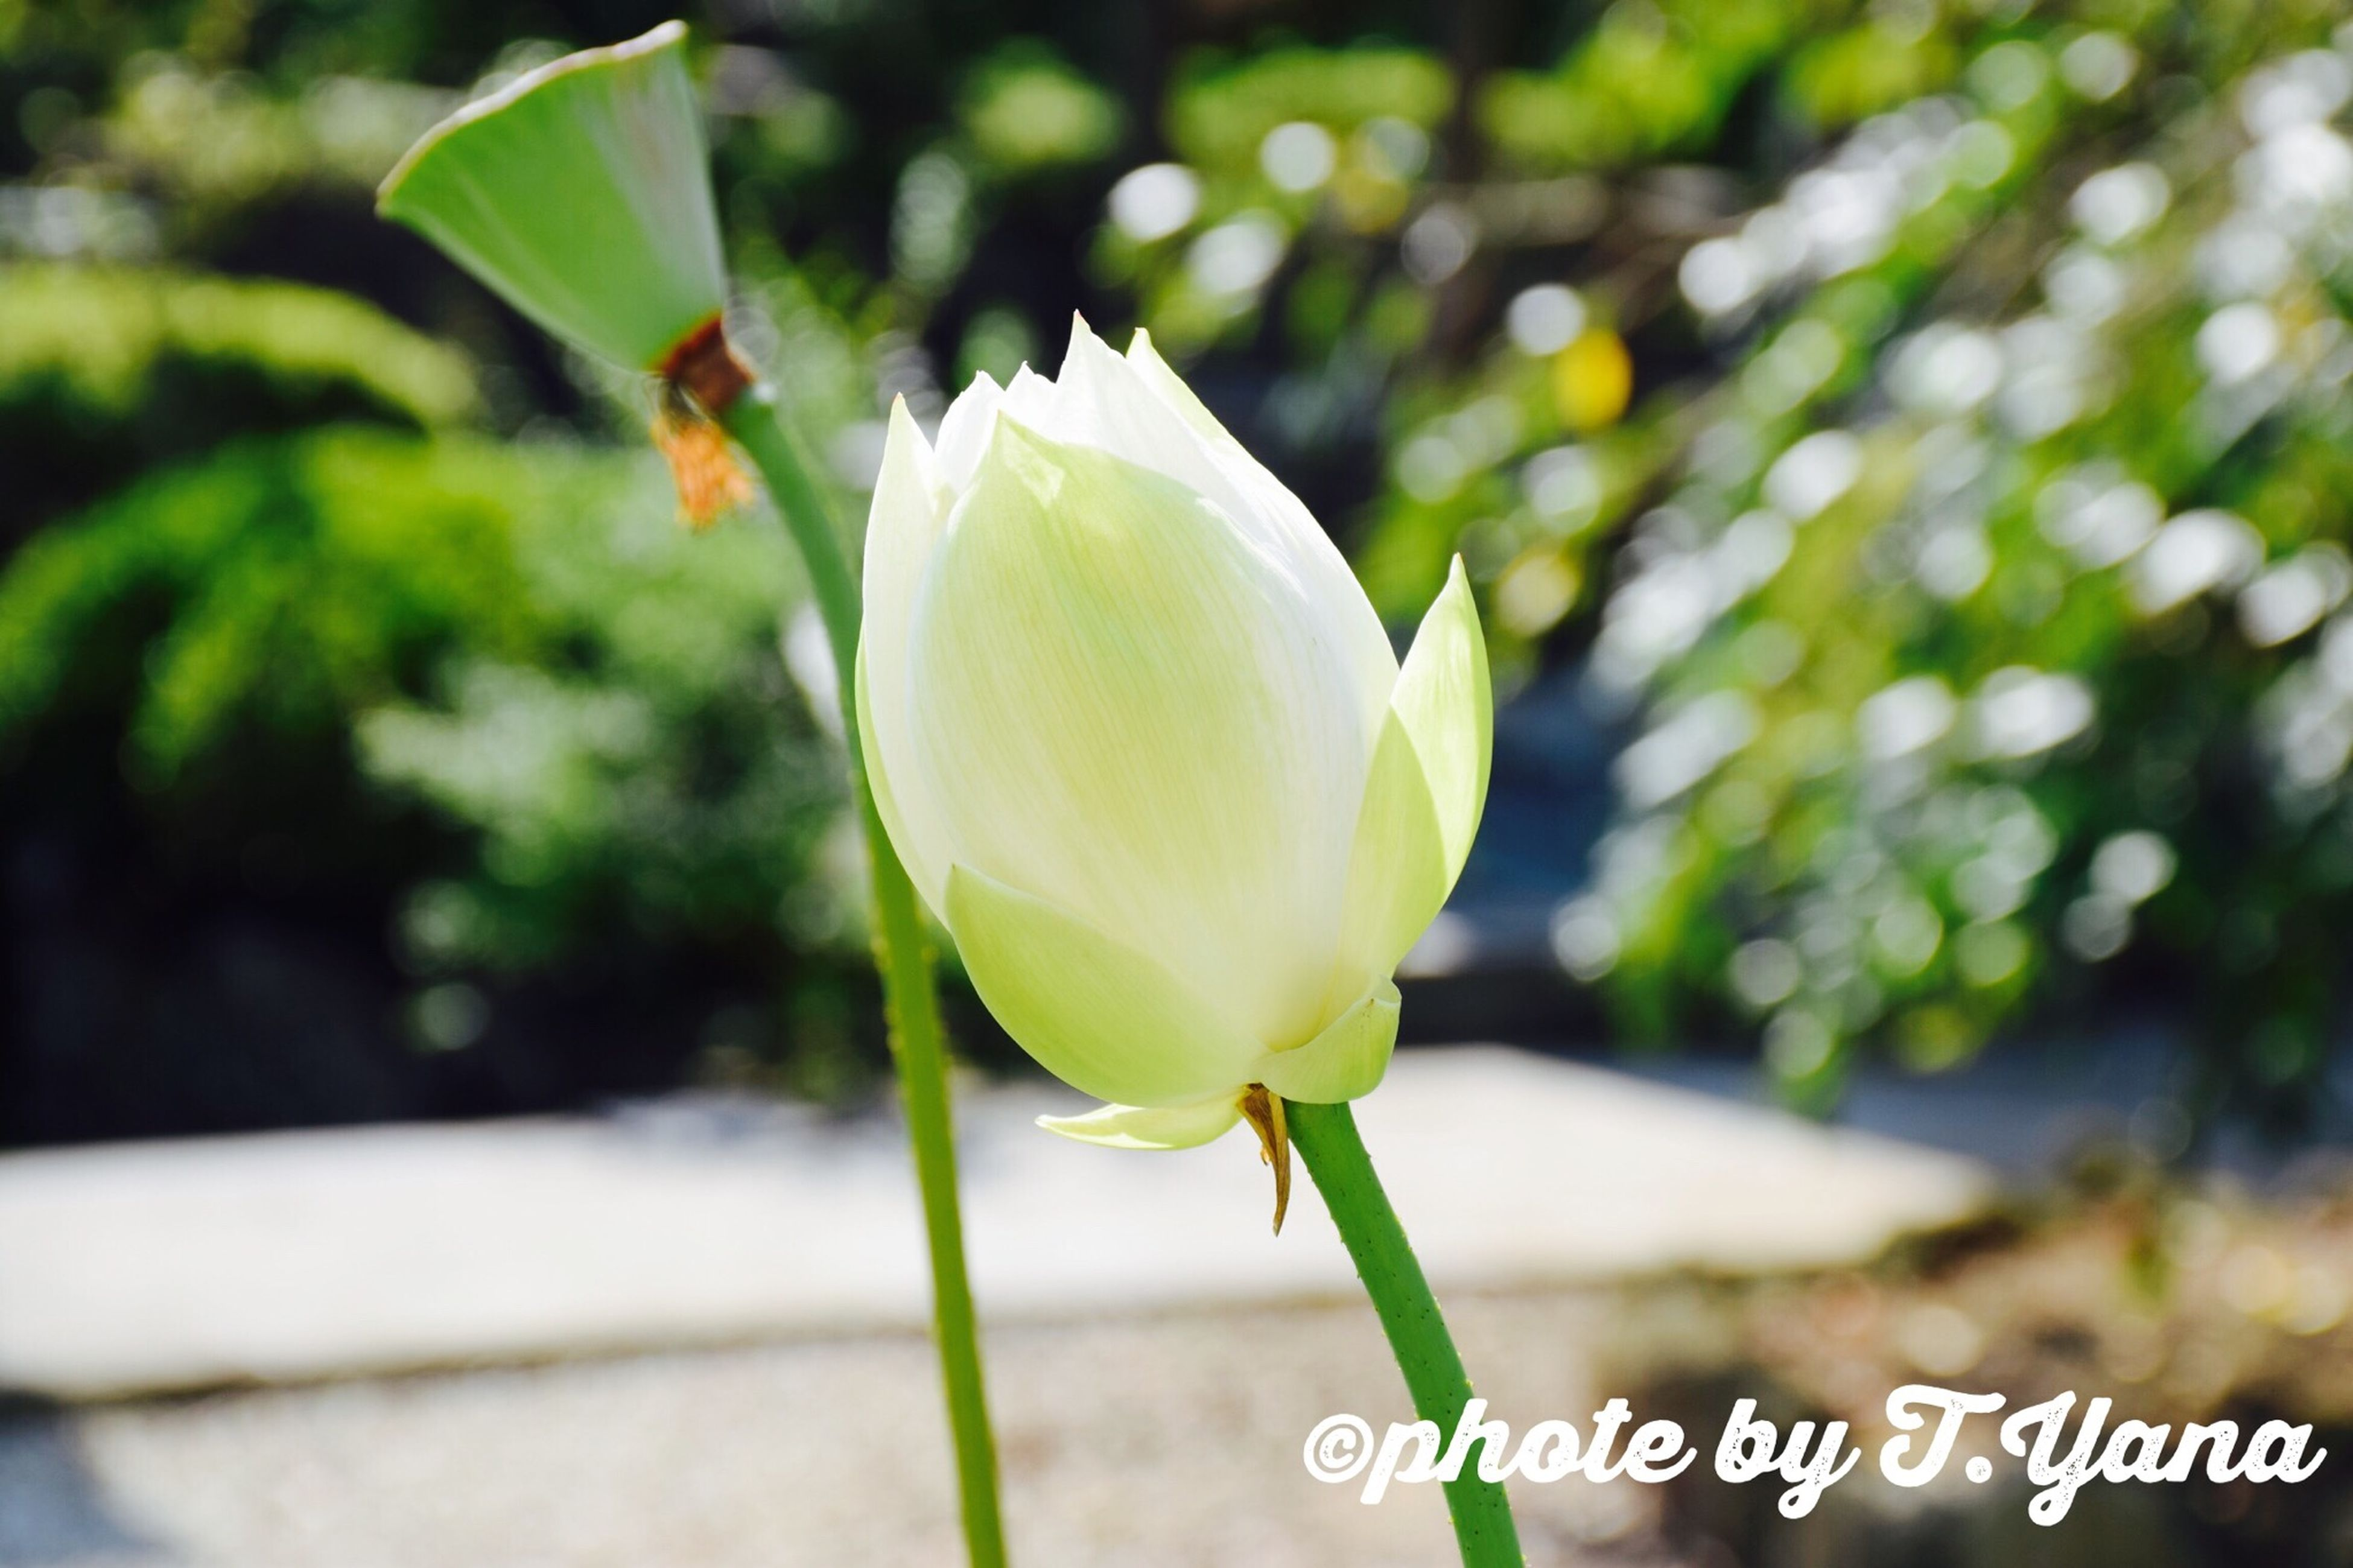 flower, petal, freshness, flower head, fragility, growth, focus on foreground, close-up, beauty in nature, nature, plant, bud, blooming, stem, leaf, single flower, white color, yellow, in bloom, blossom